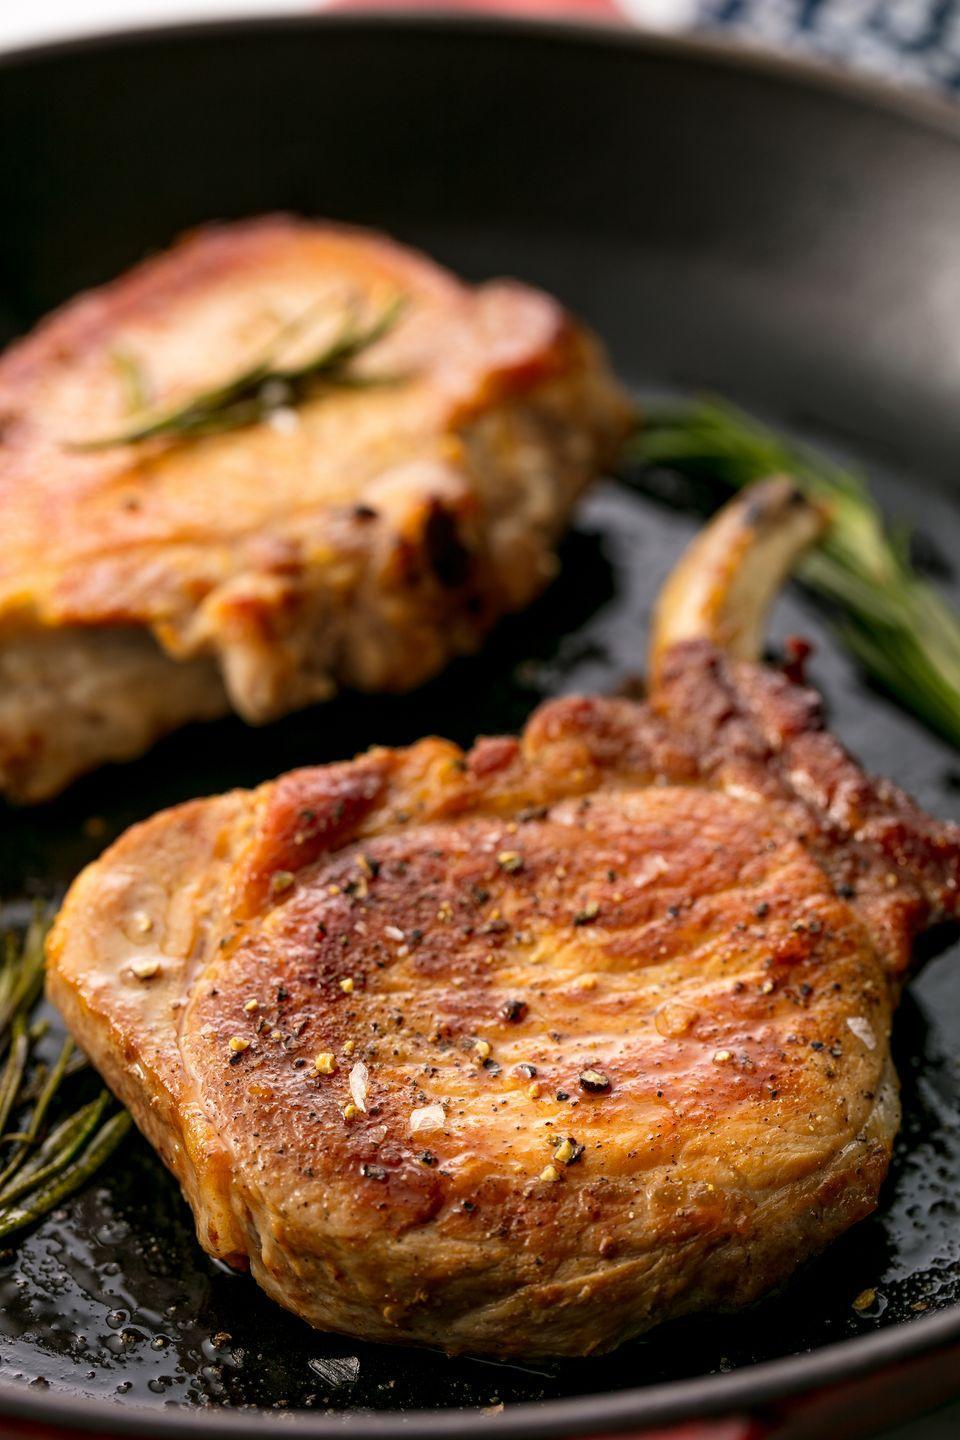 "<p>Your search for the perfect pork chop is over.</p><p>Get the recipe from <a href=""https://www.delish.com/cooking/recipe-ideas/recipes/a54981/pan-fried-pork-chop-recipe/"" rel=""nofollow noopener"" target=""_blank"" data-ylk=""slk:Delish"" class=""link rapid-noclick-resp"">Delish</a>. </p>"